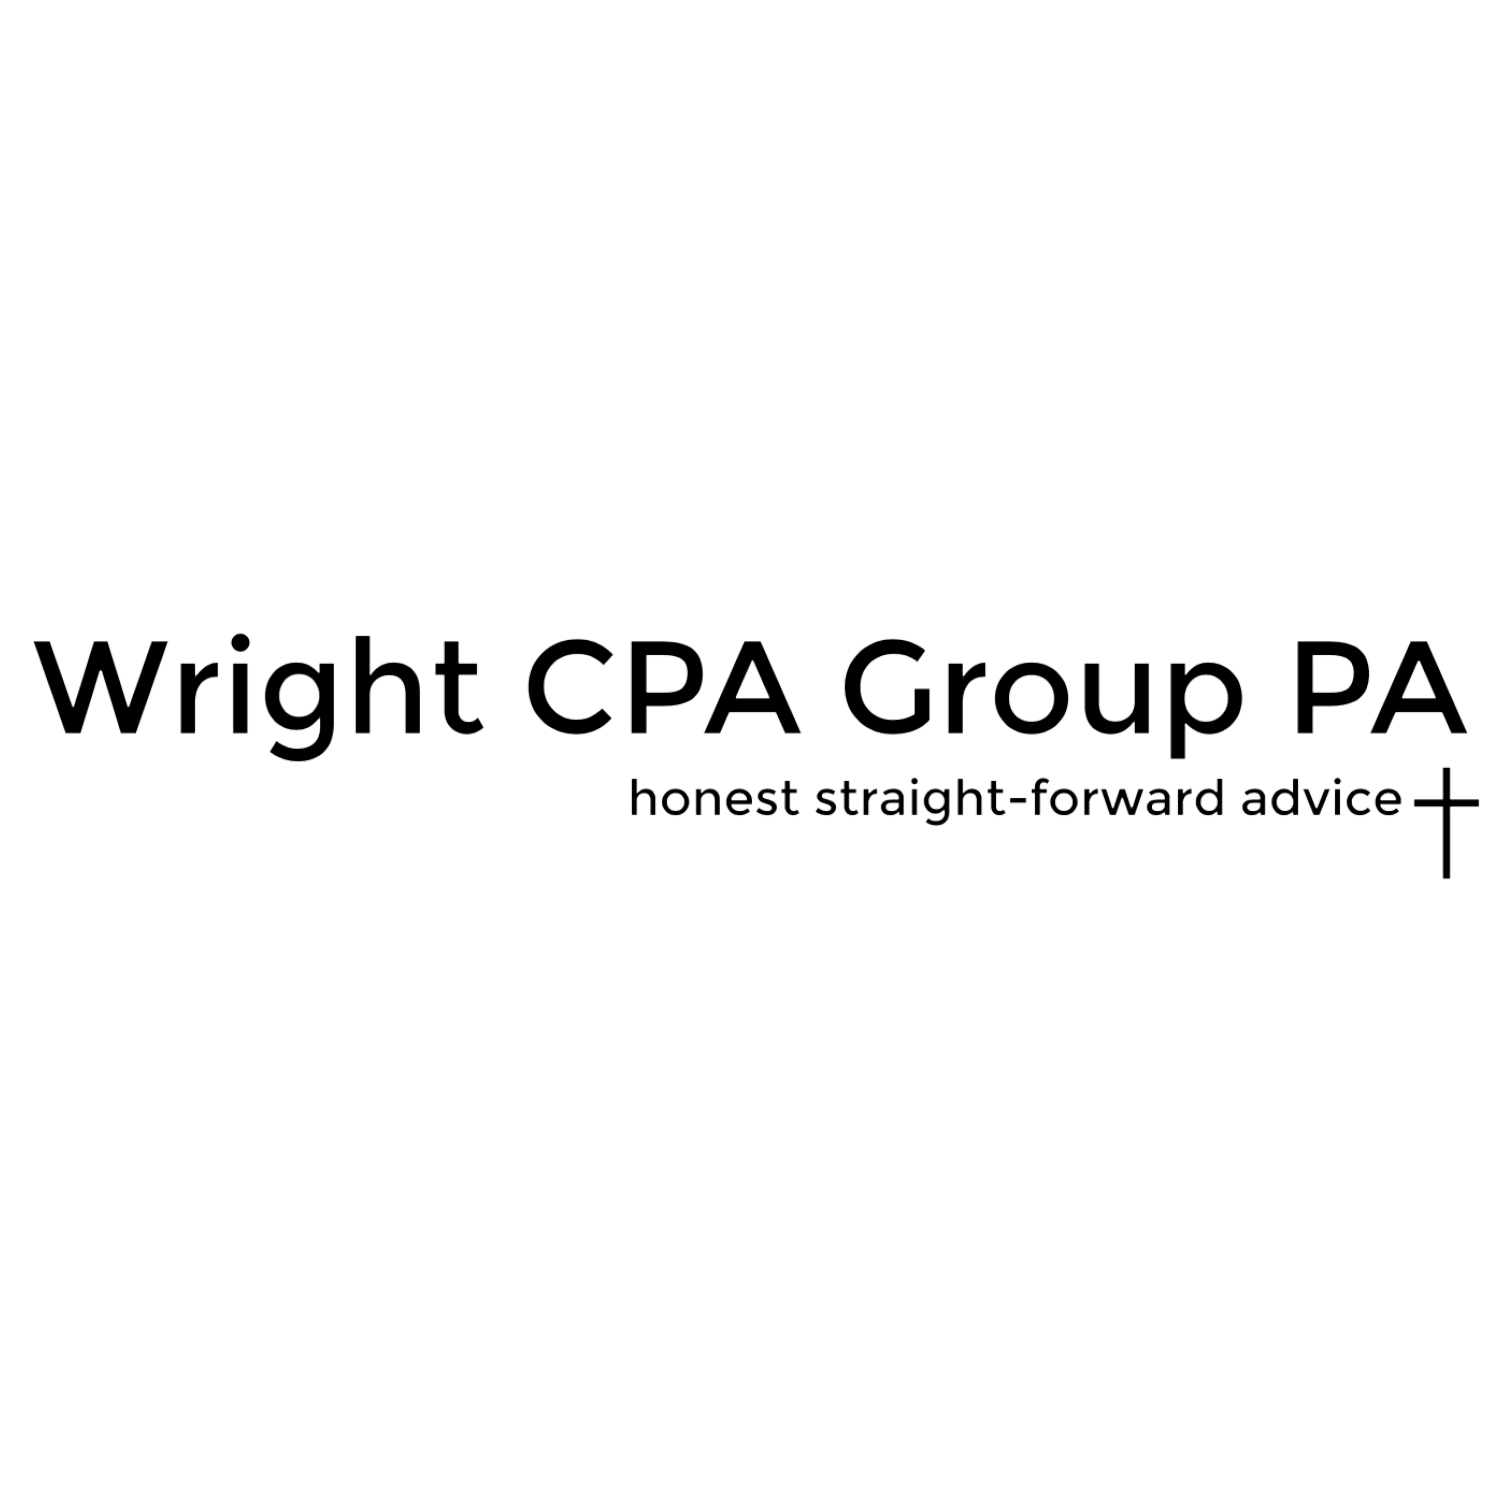 wright cpa COPY.png